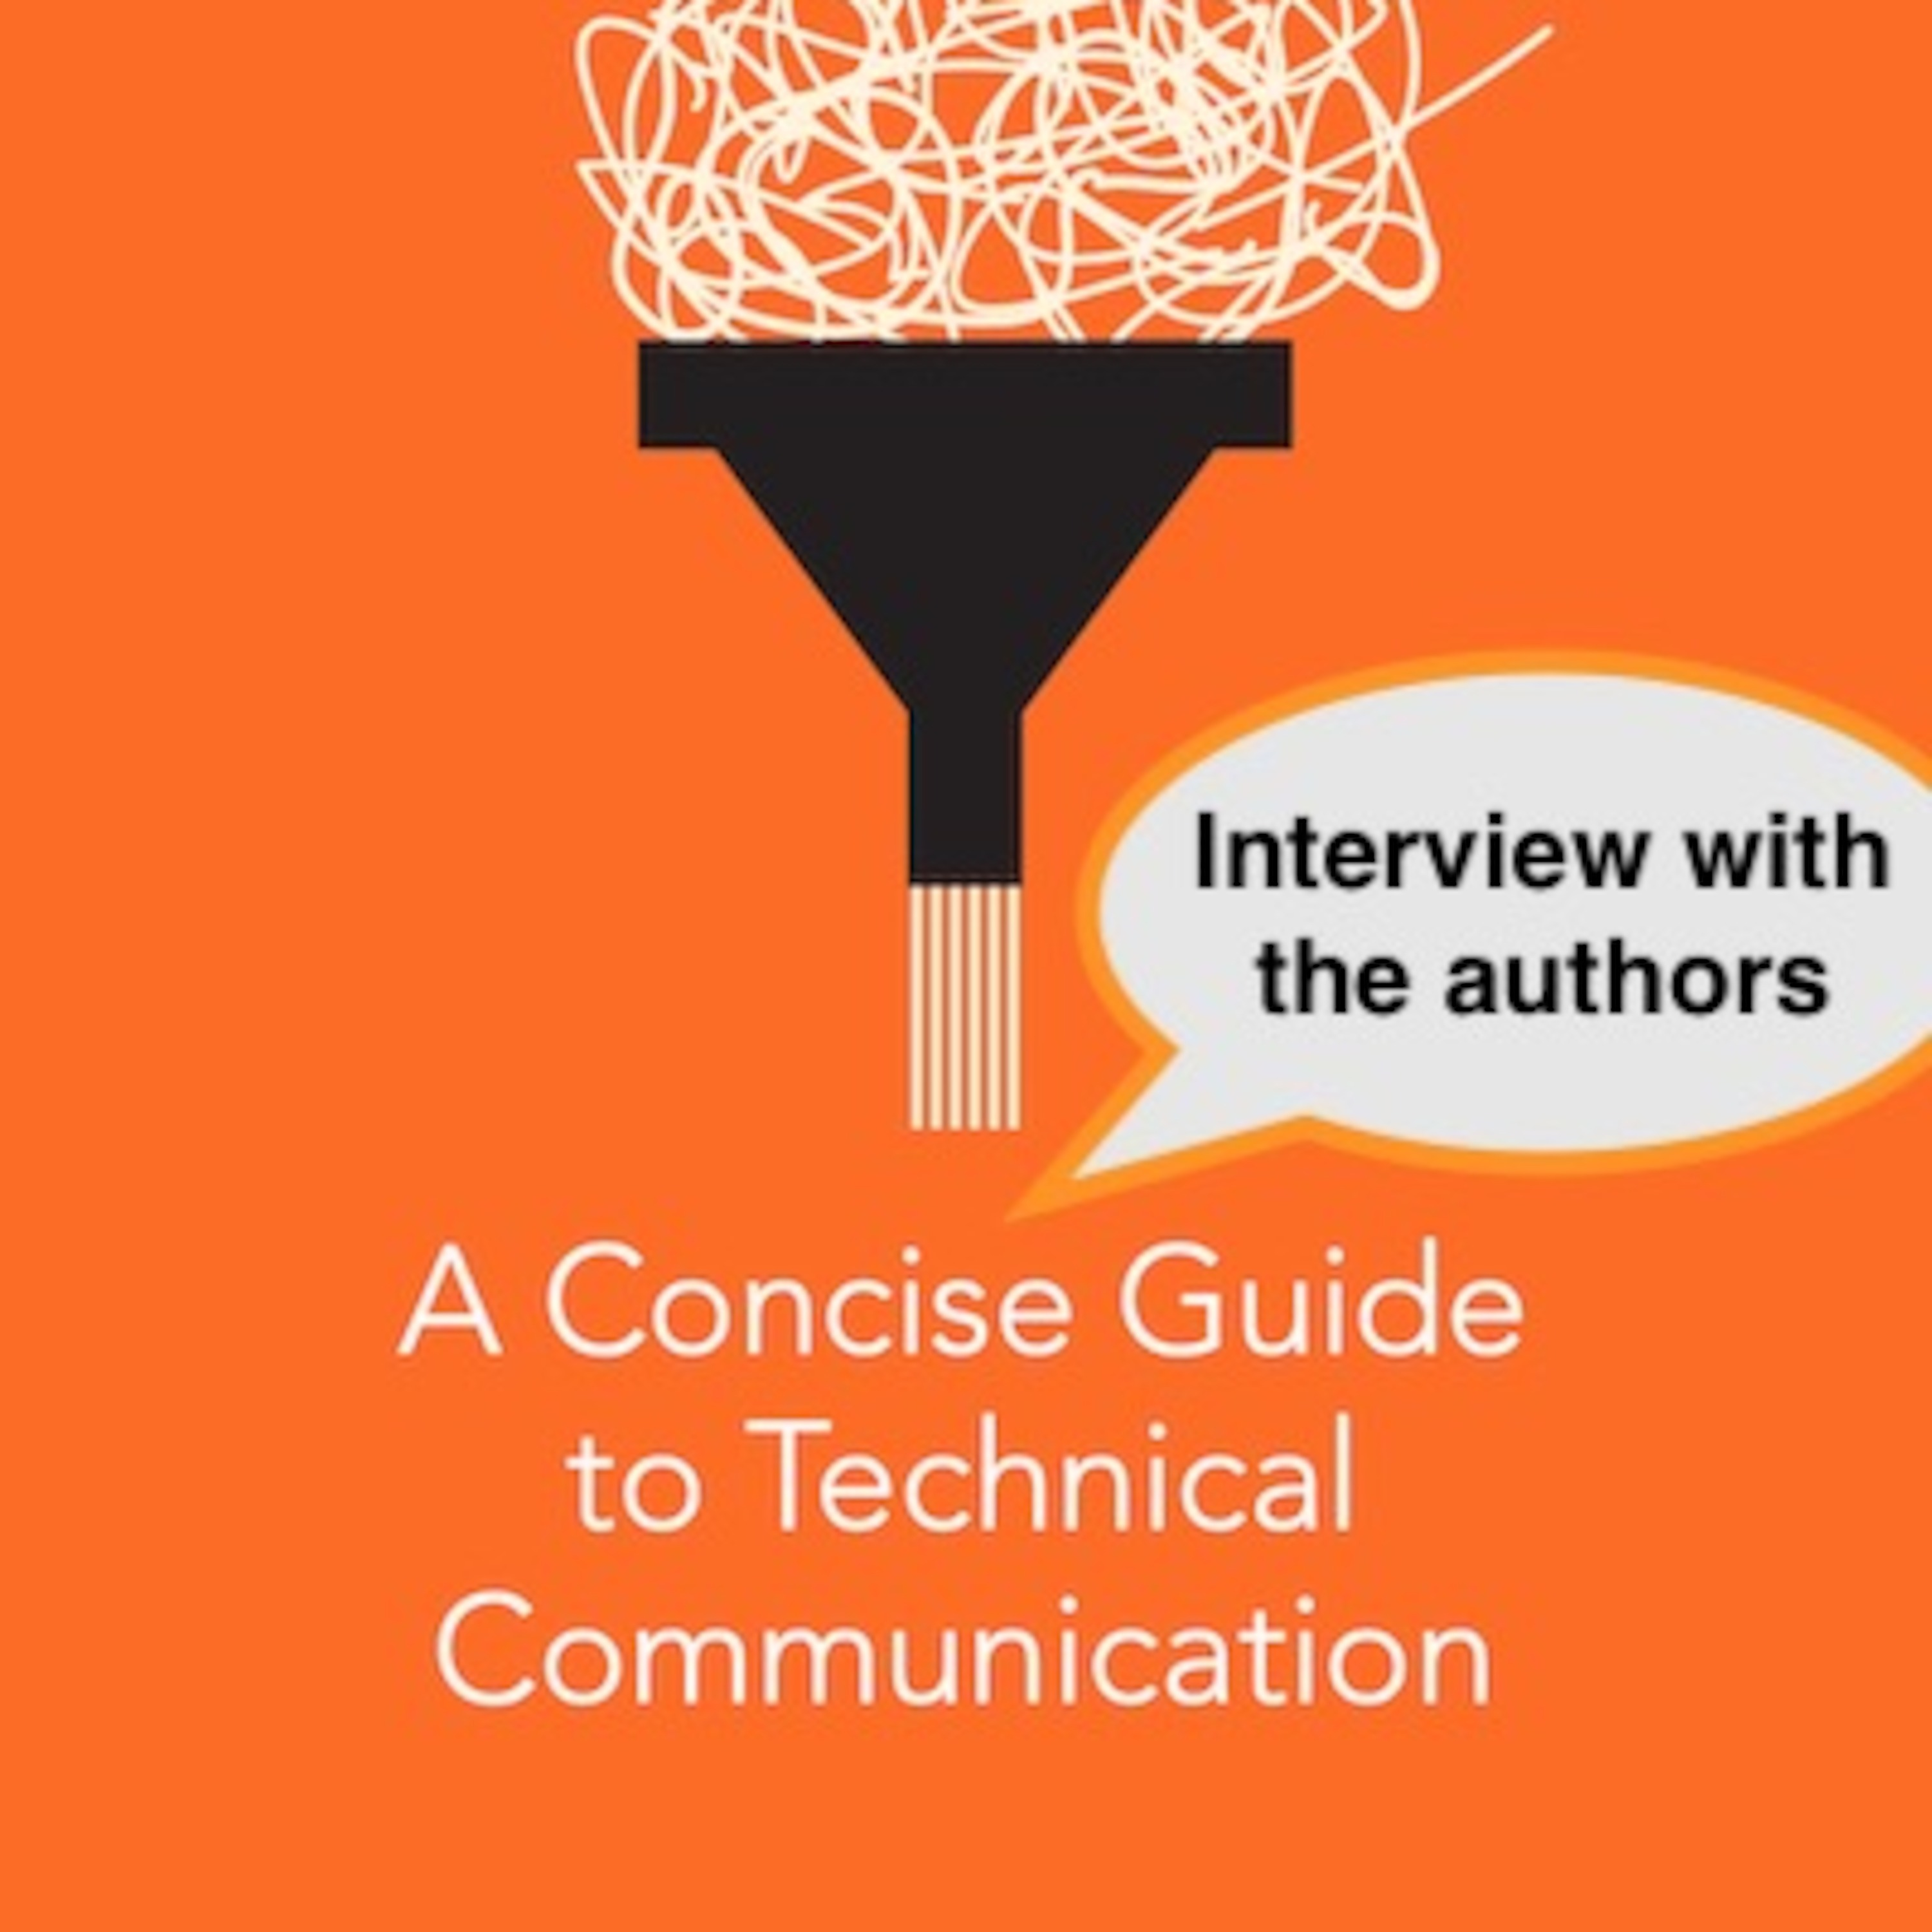 Concise Guide to Technical Communication: Author interview